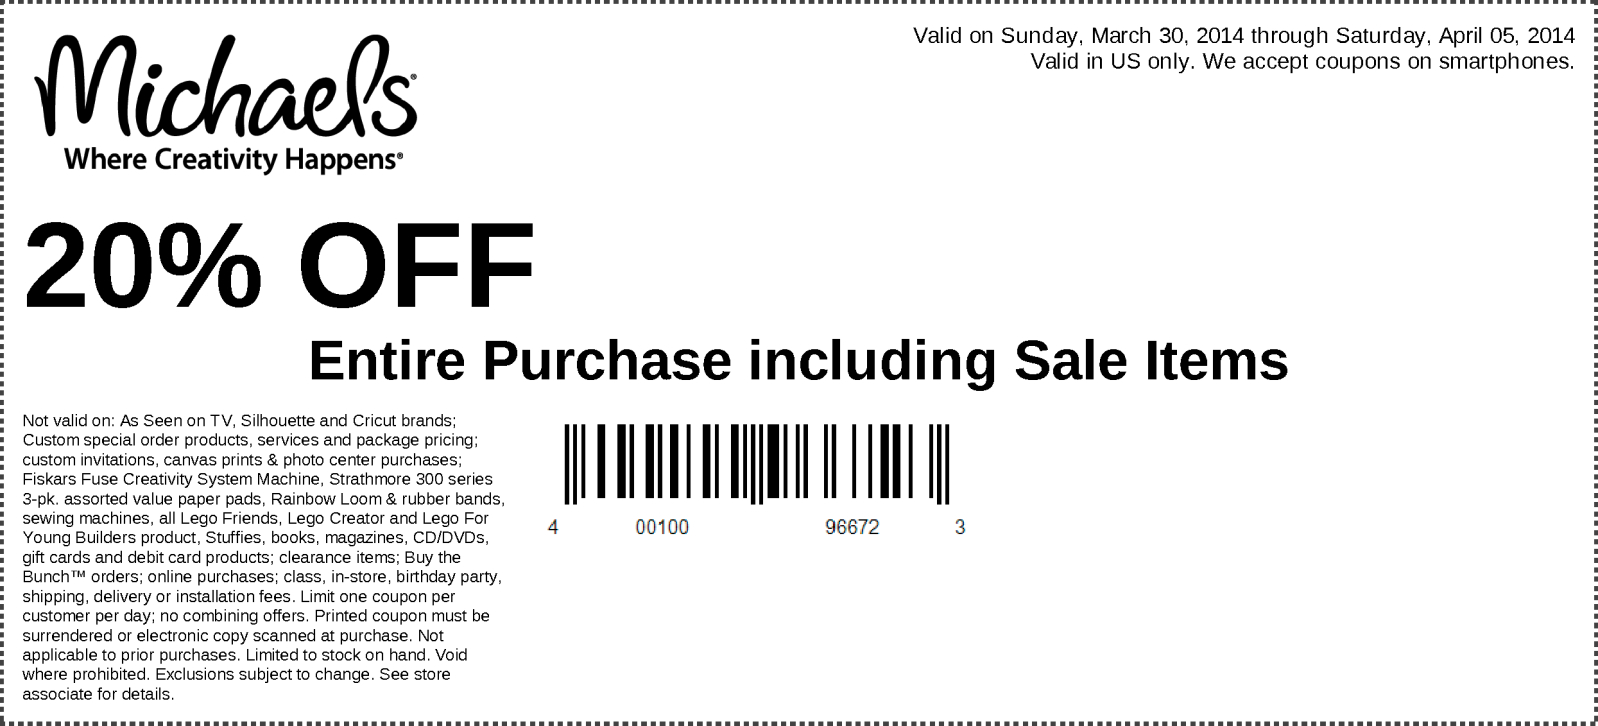 Michaels - 20% Off Your Entire In-Store Purchase - Exp. 04/05/14 - Free Printable Michaels Coupons